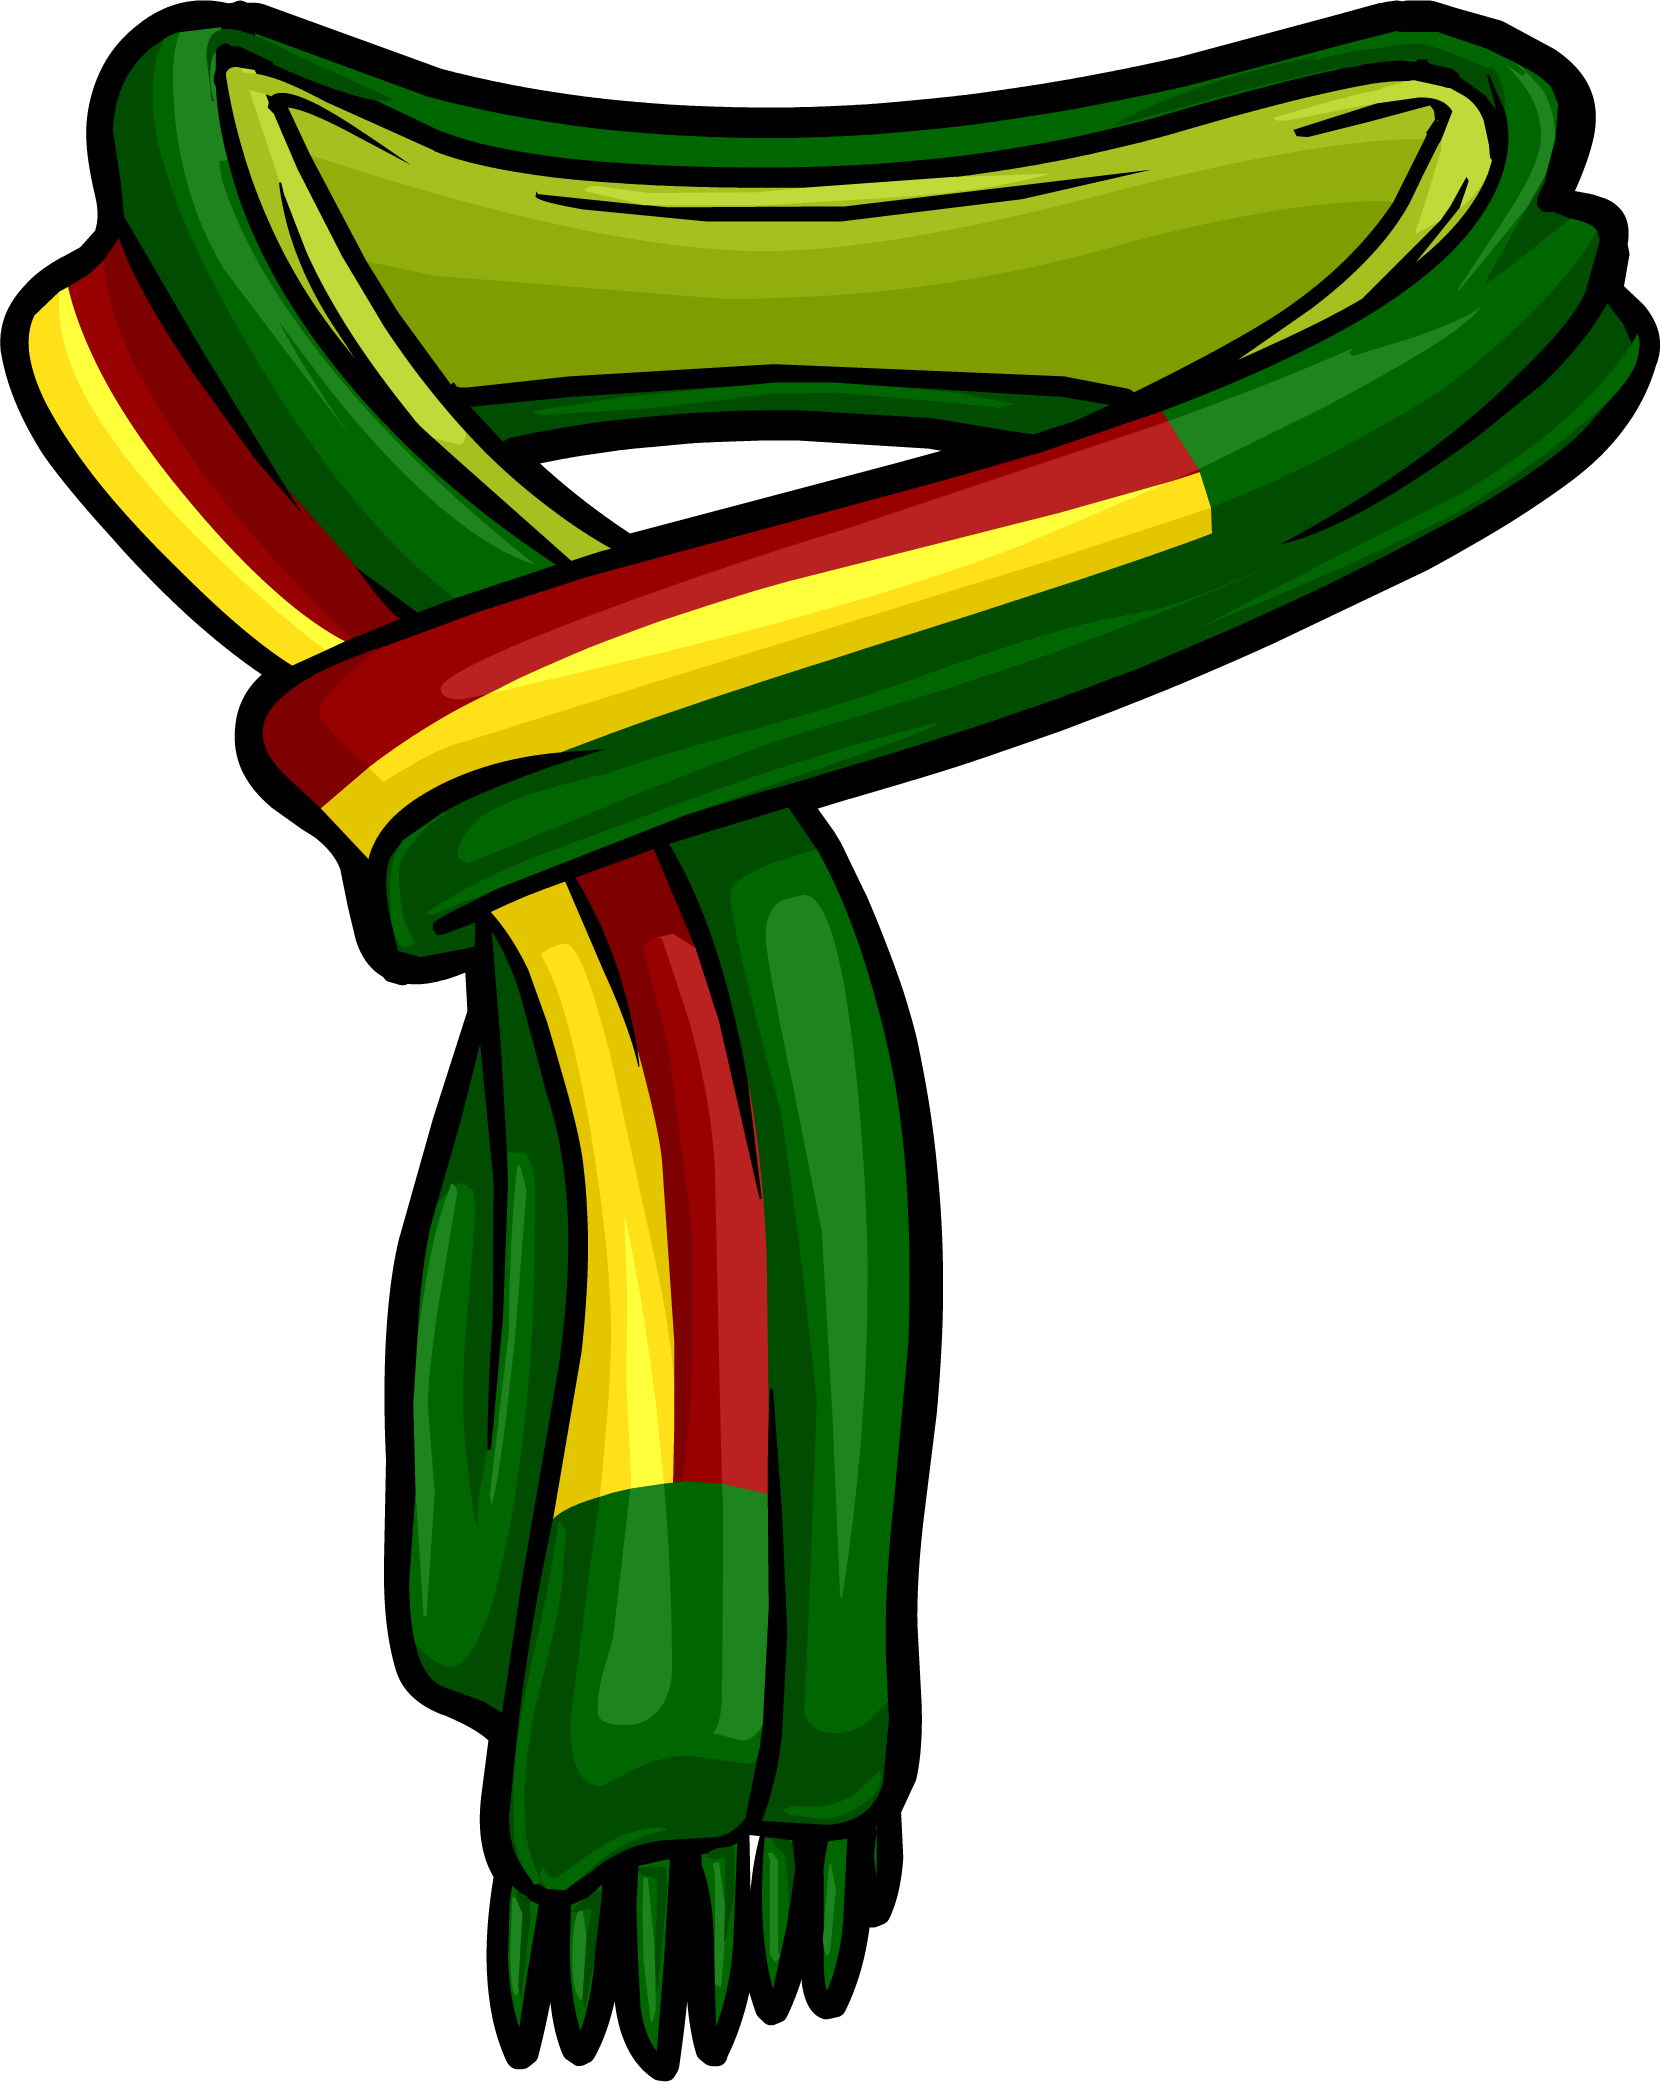 Green Scarf PNG Image